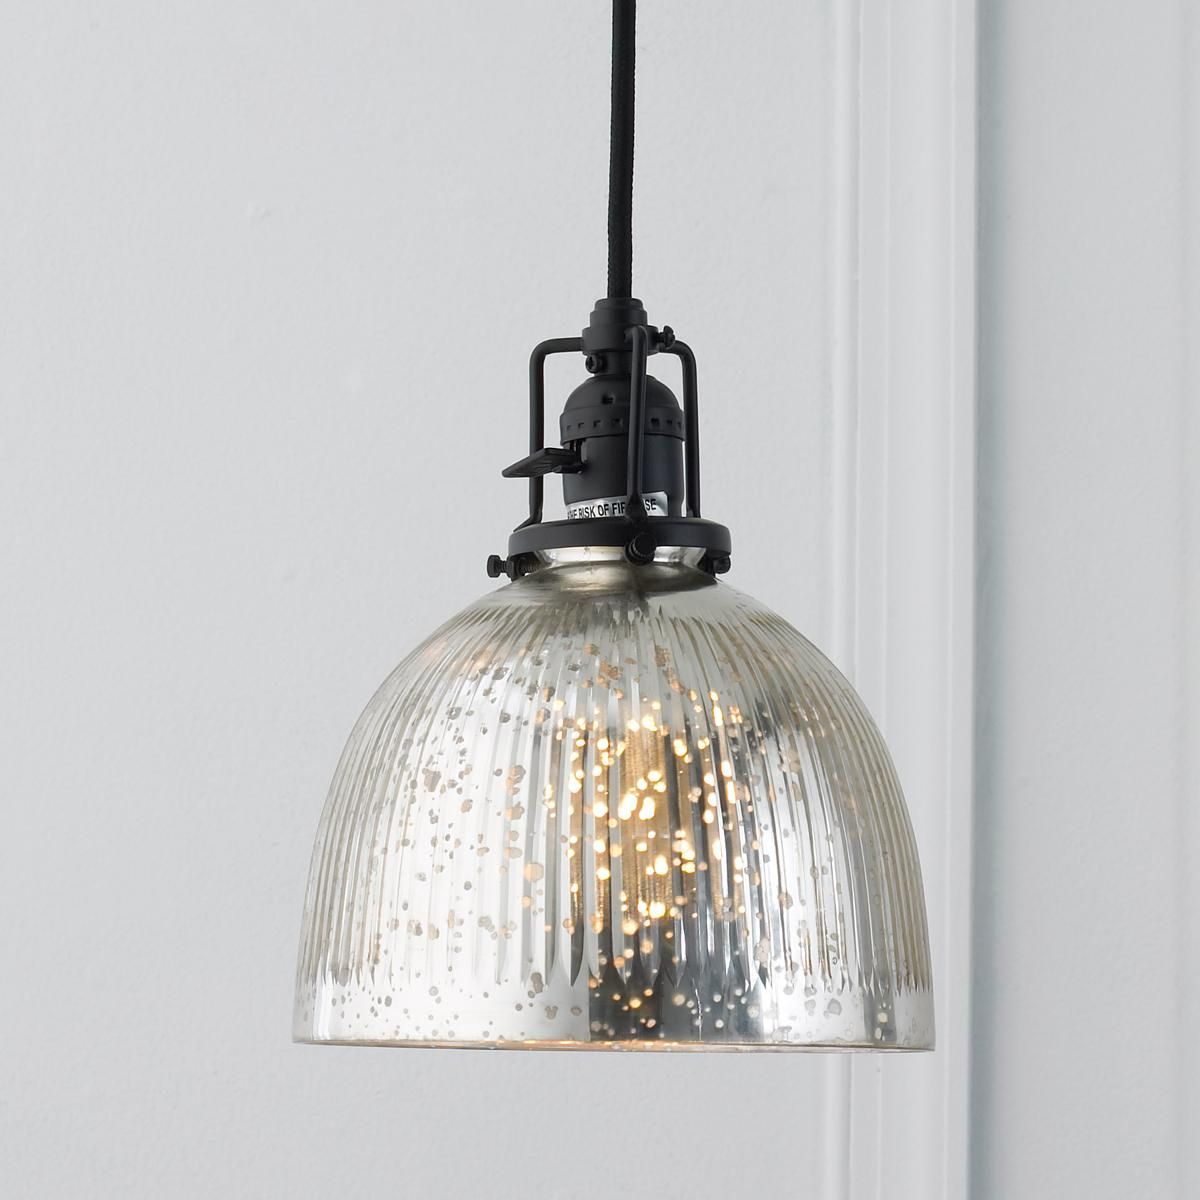 Ribbed Dome Mercury Glass Shade Pendant Light Home